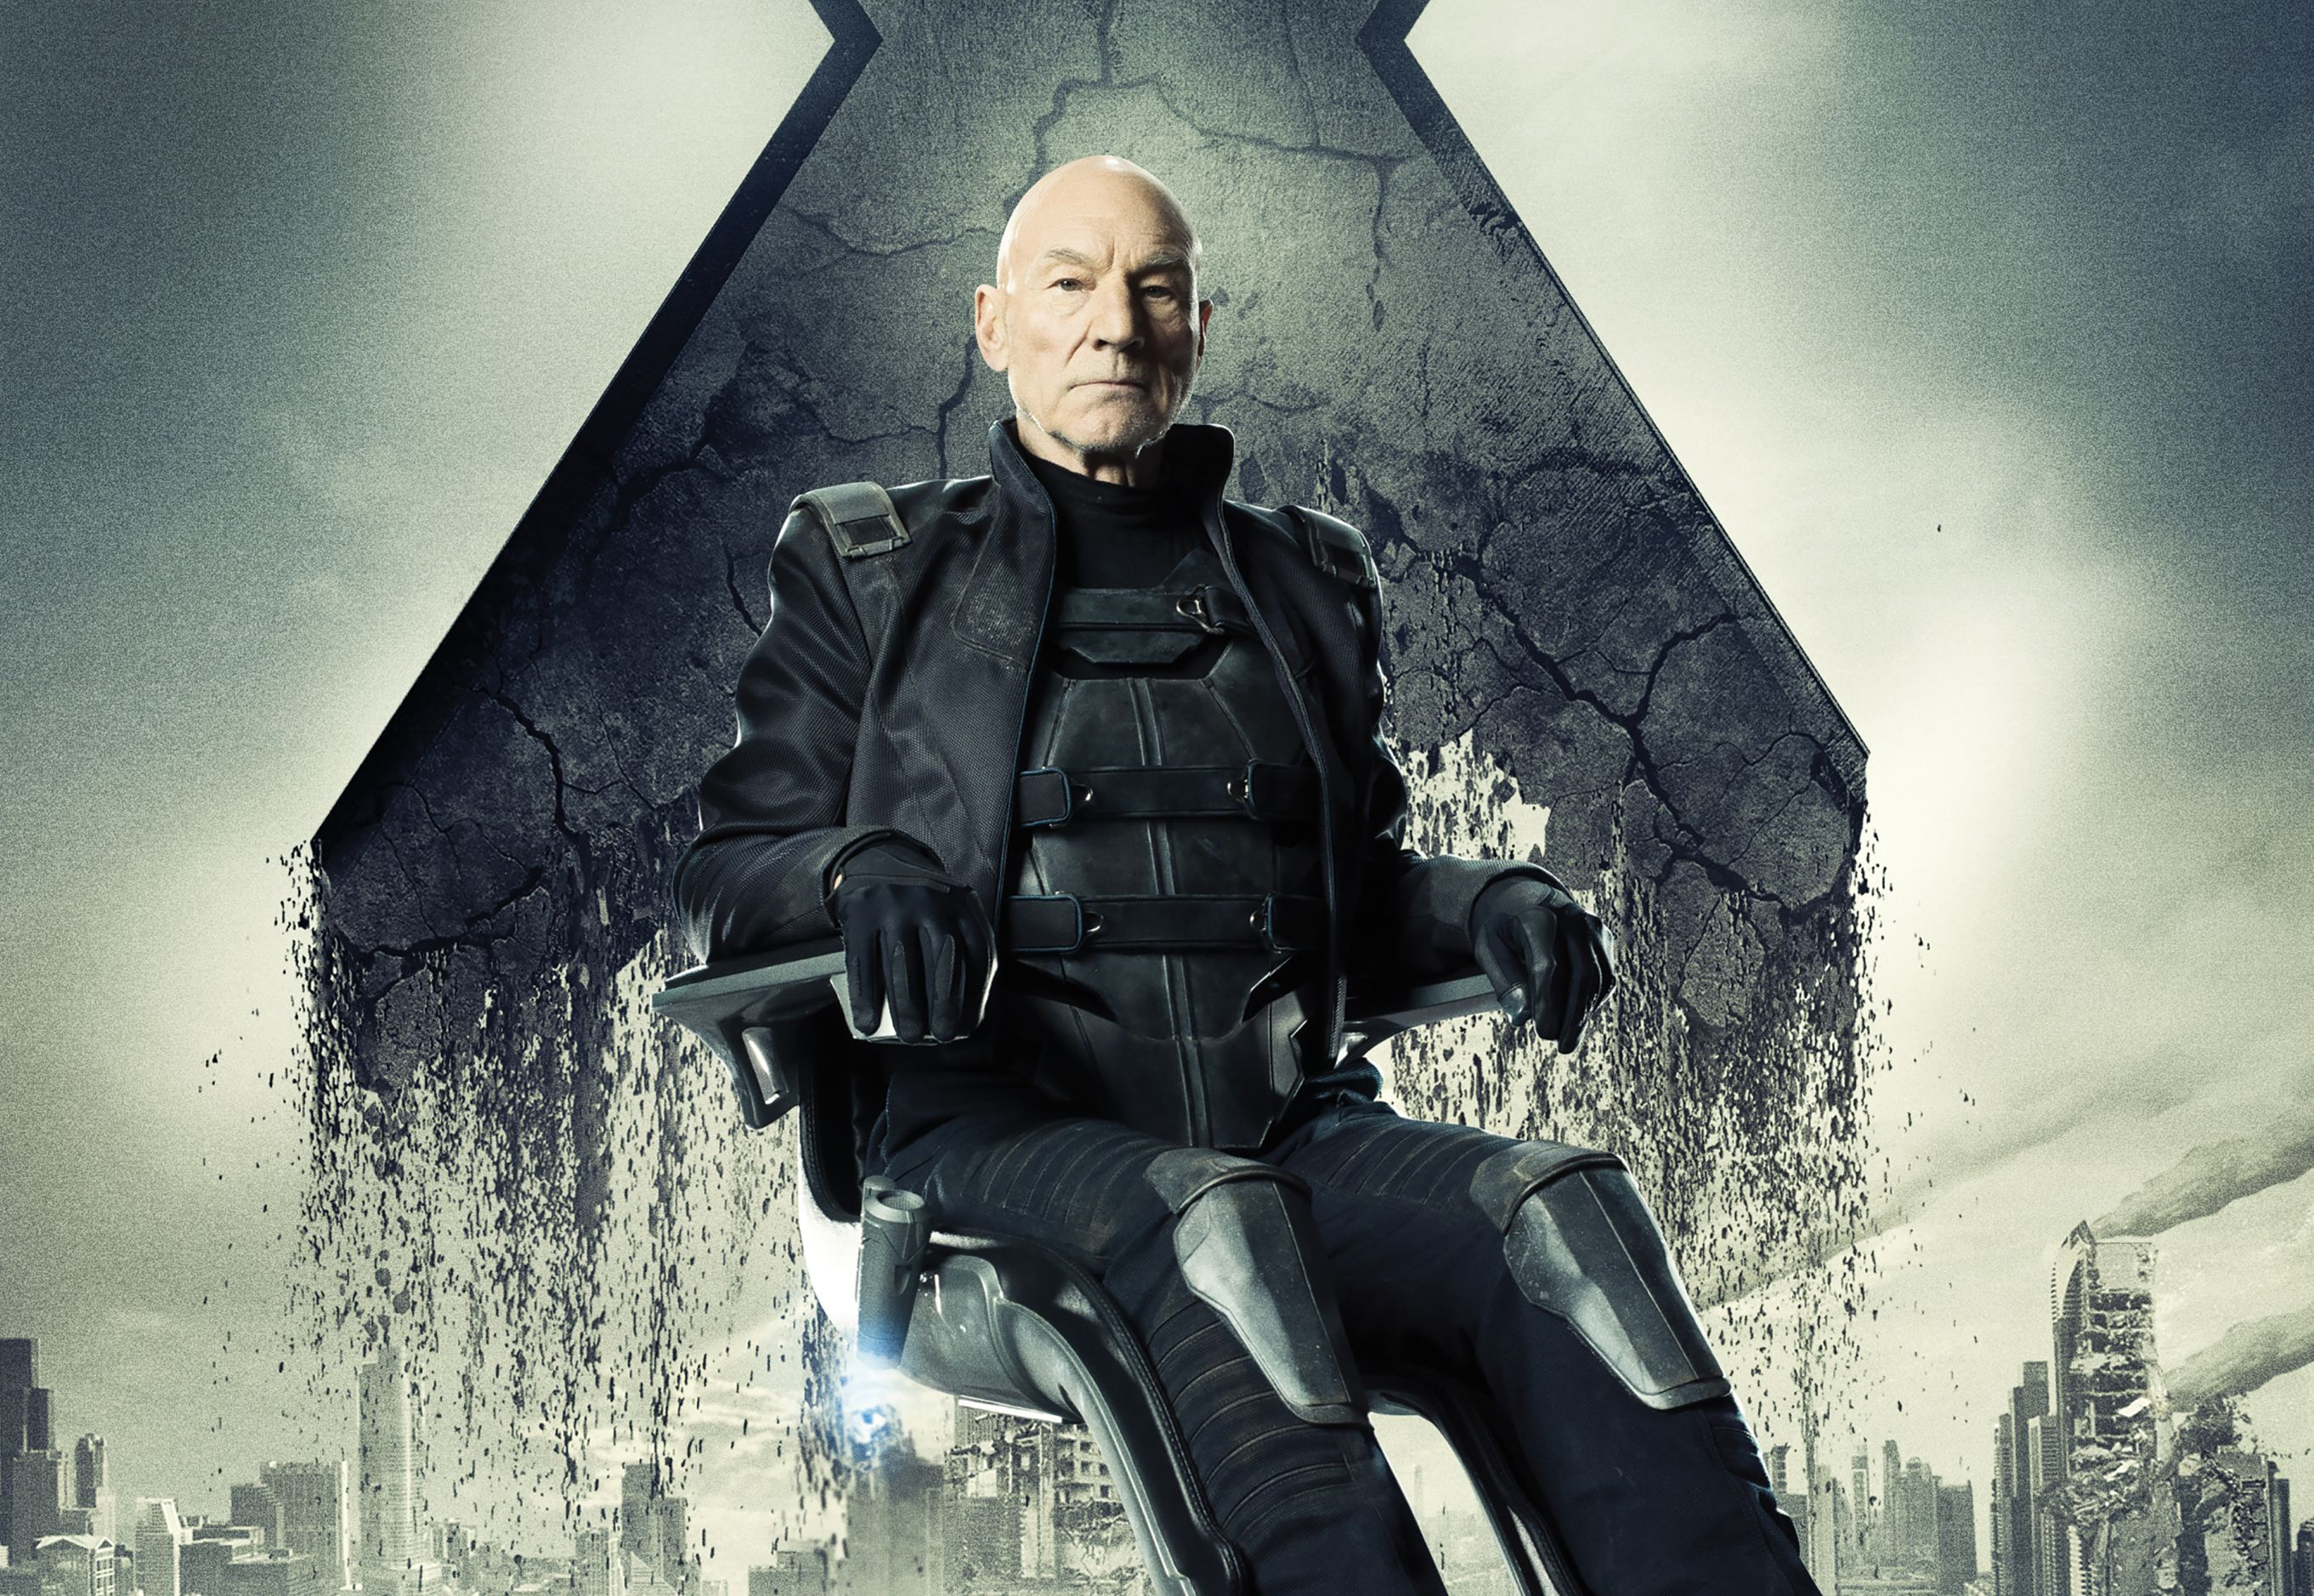 X Men Days Of Future Past Old Charles Xavier Professor X Wallpaper Days Of Future Past X Men Superhero